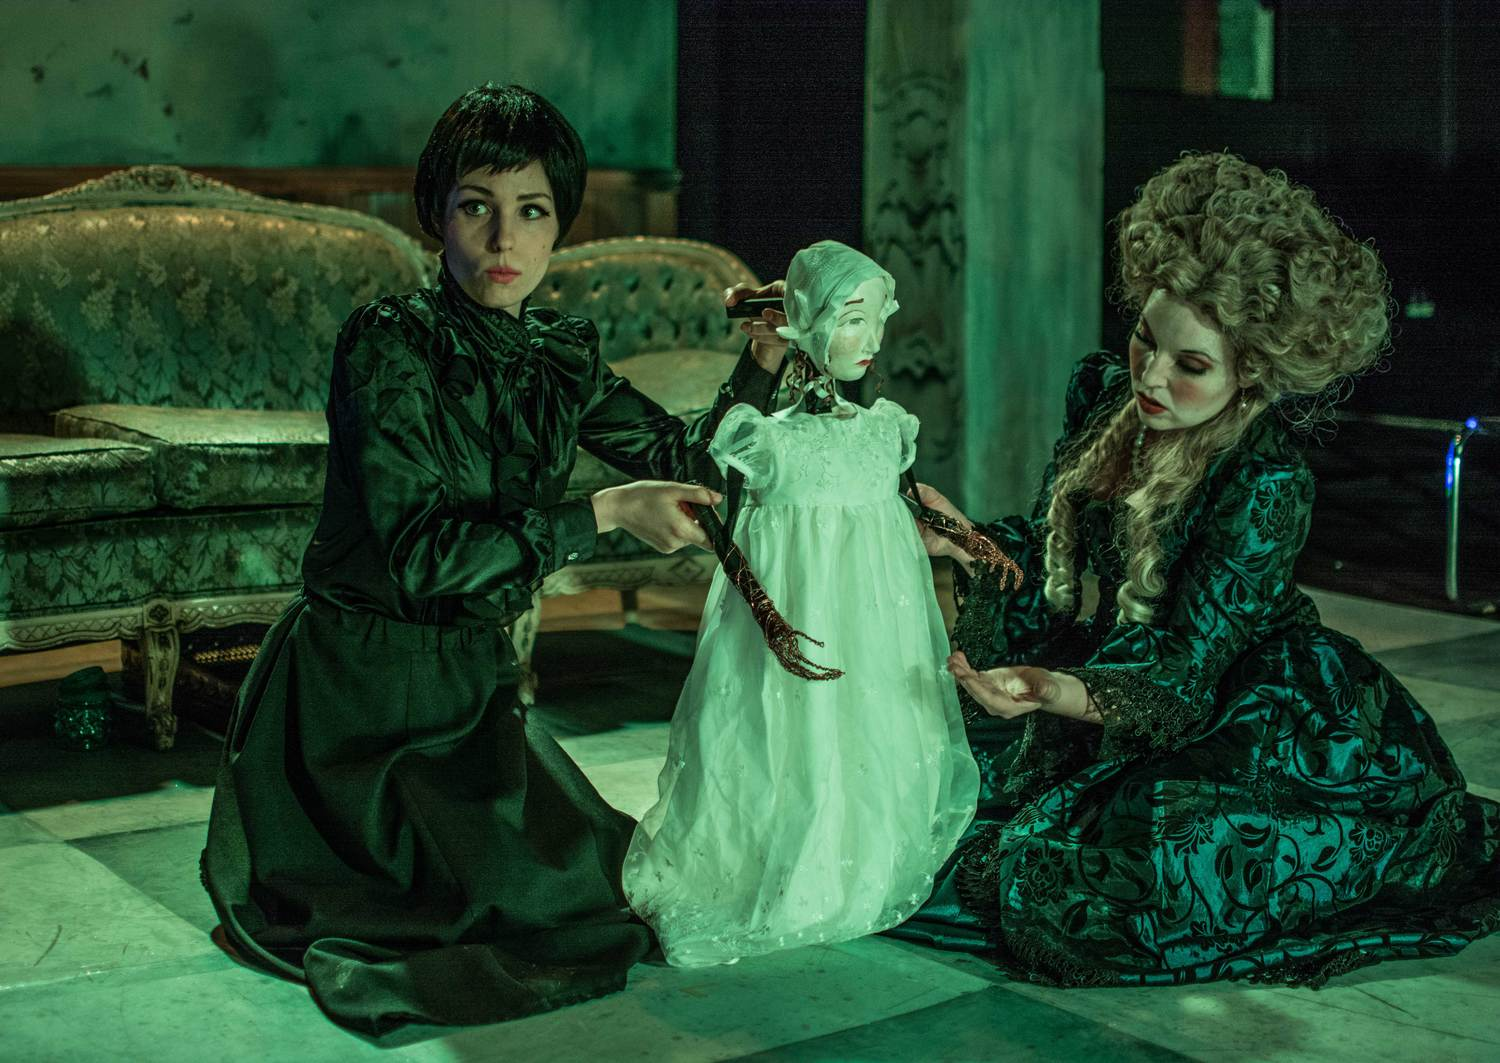 Voyage at Chopin Theatre